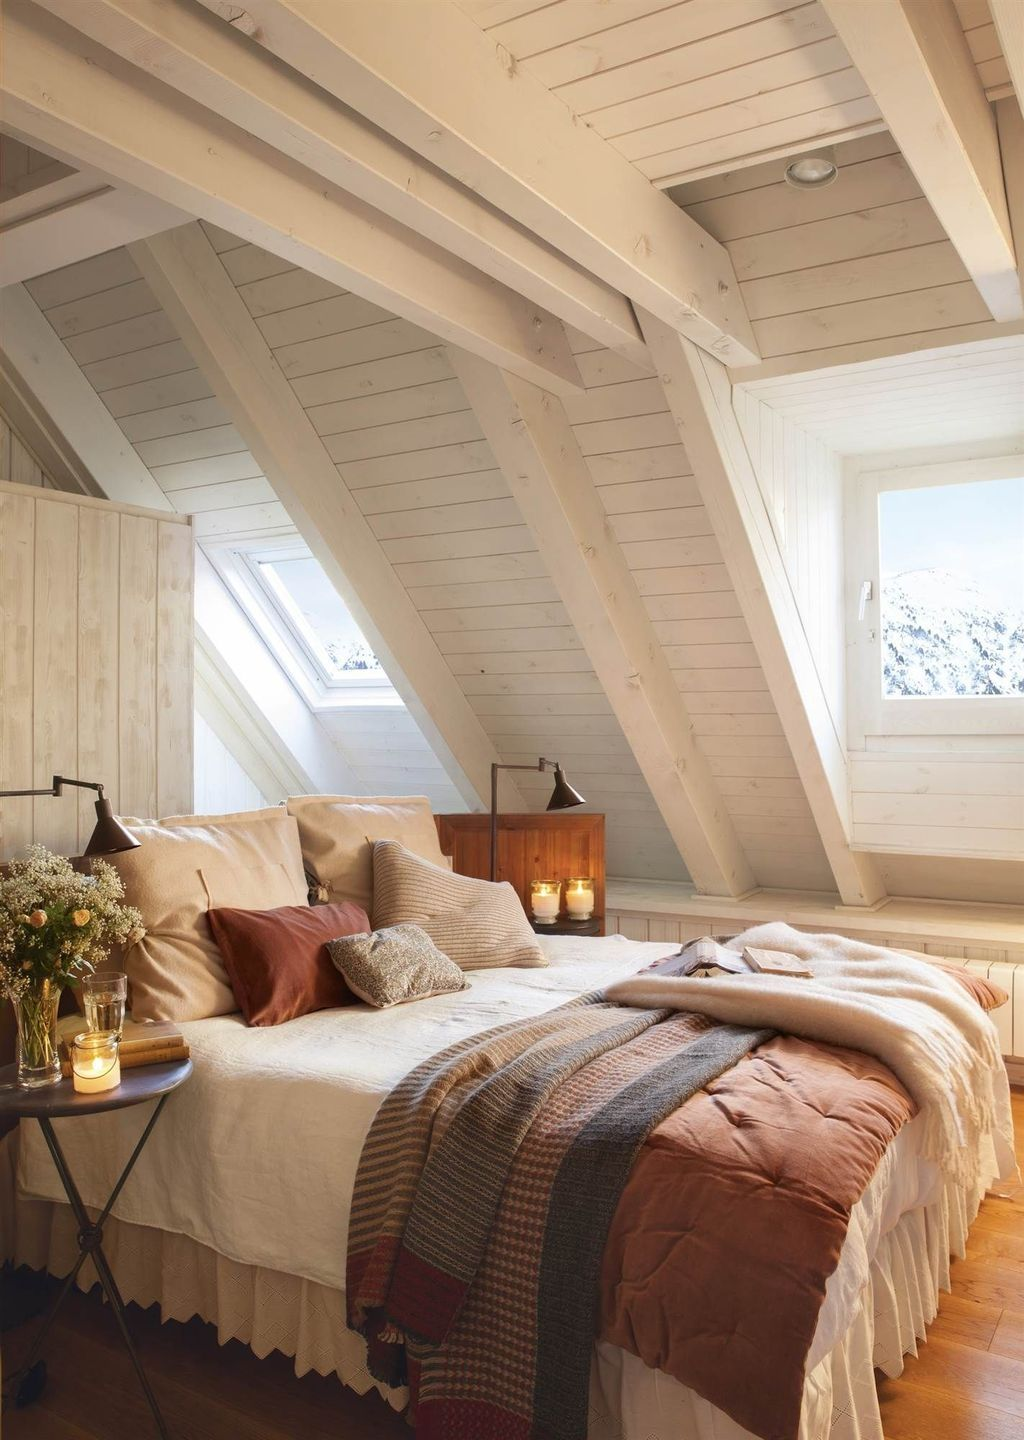 12 Stunning Bedroom Paint Ideas For Your Master Suite: 44 Stunning Attic Bedroom Decorating Ideas